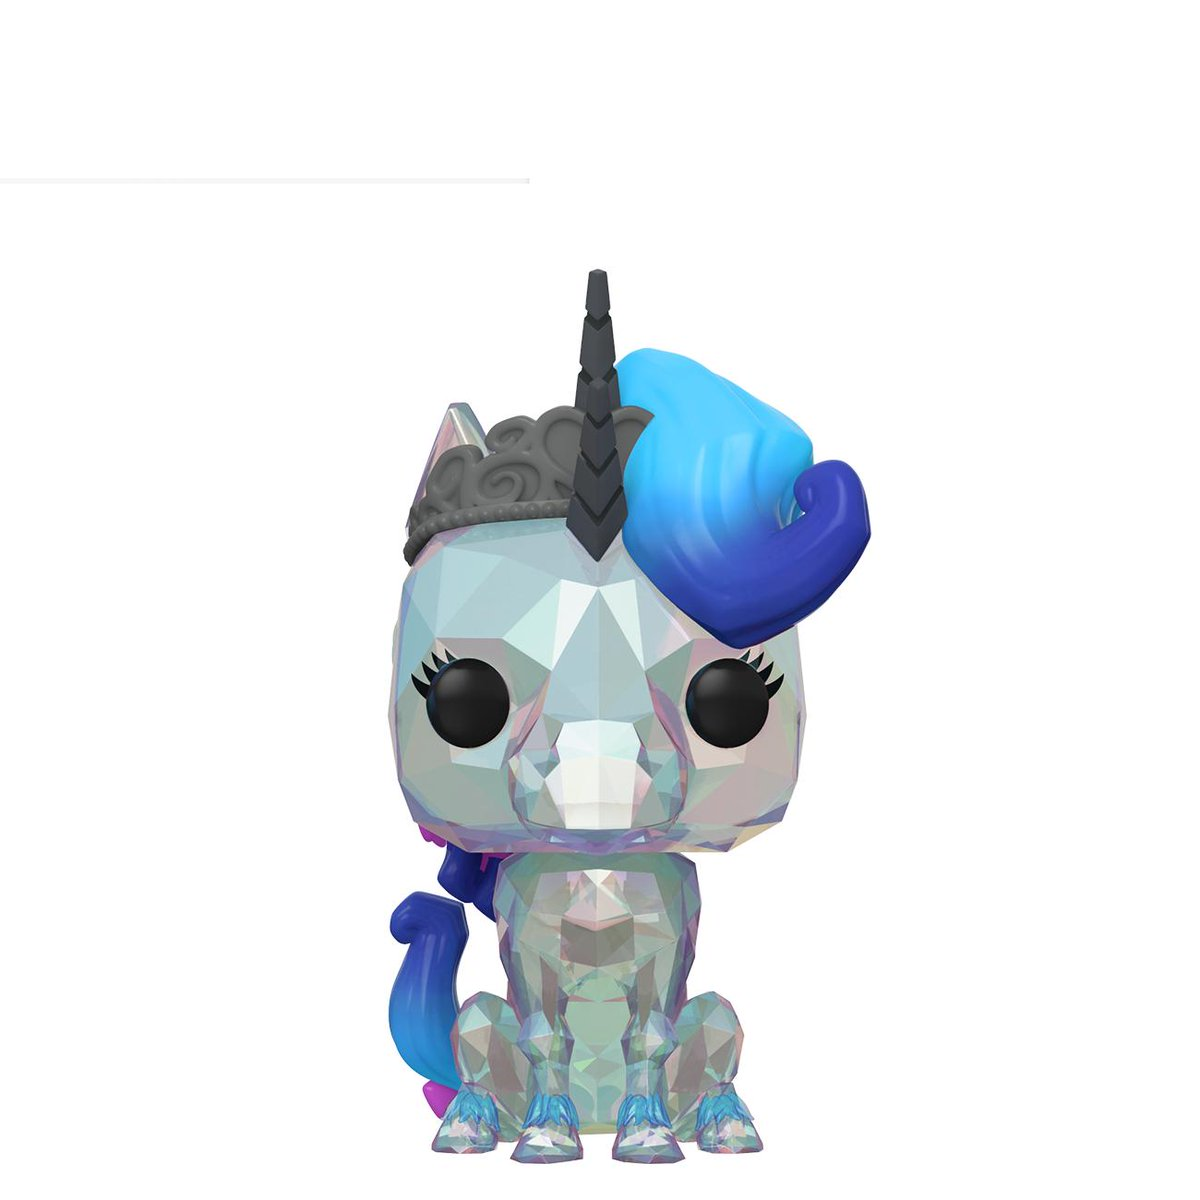 RT & follow @OriginalFunko for a chance to WIN a 2019 #NYCC exclusive Butt Stallion Pop! #Funko #Exclusive #Giveaway #FunkoNYCC #NYCC #Borderlands  <br>http://pic.twitter.com/EmPQcKxtN4